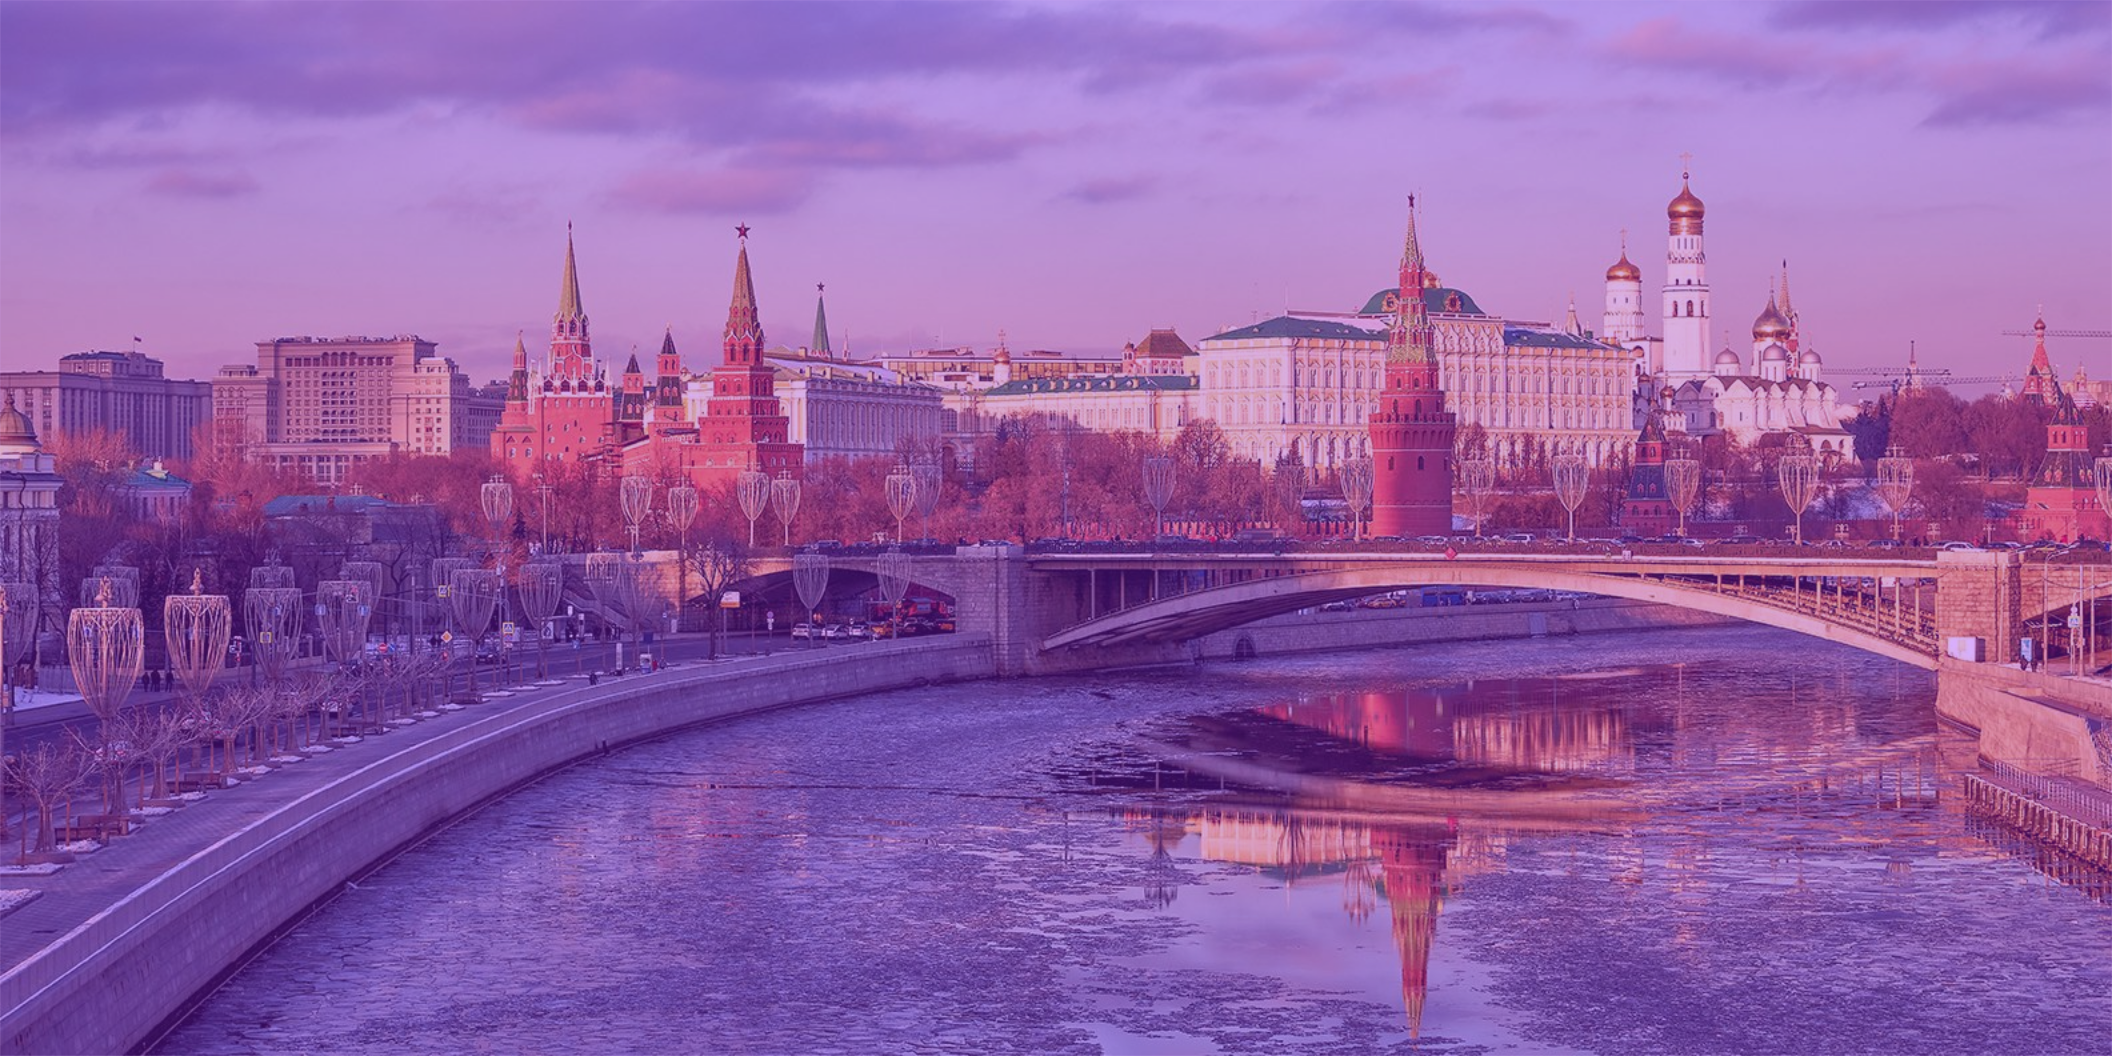 Maria Snegovaya – Conservative Turn in Eastern Europe: Political Conservatism in Russia